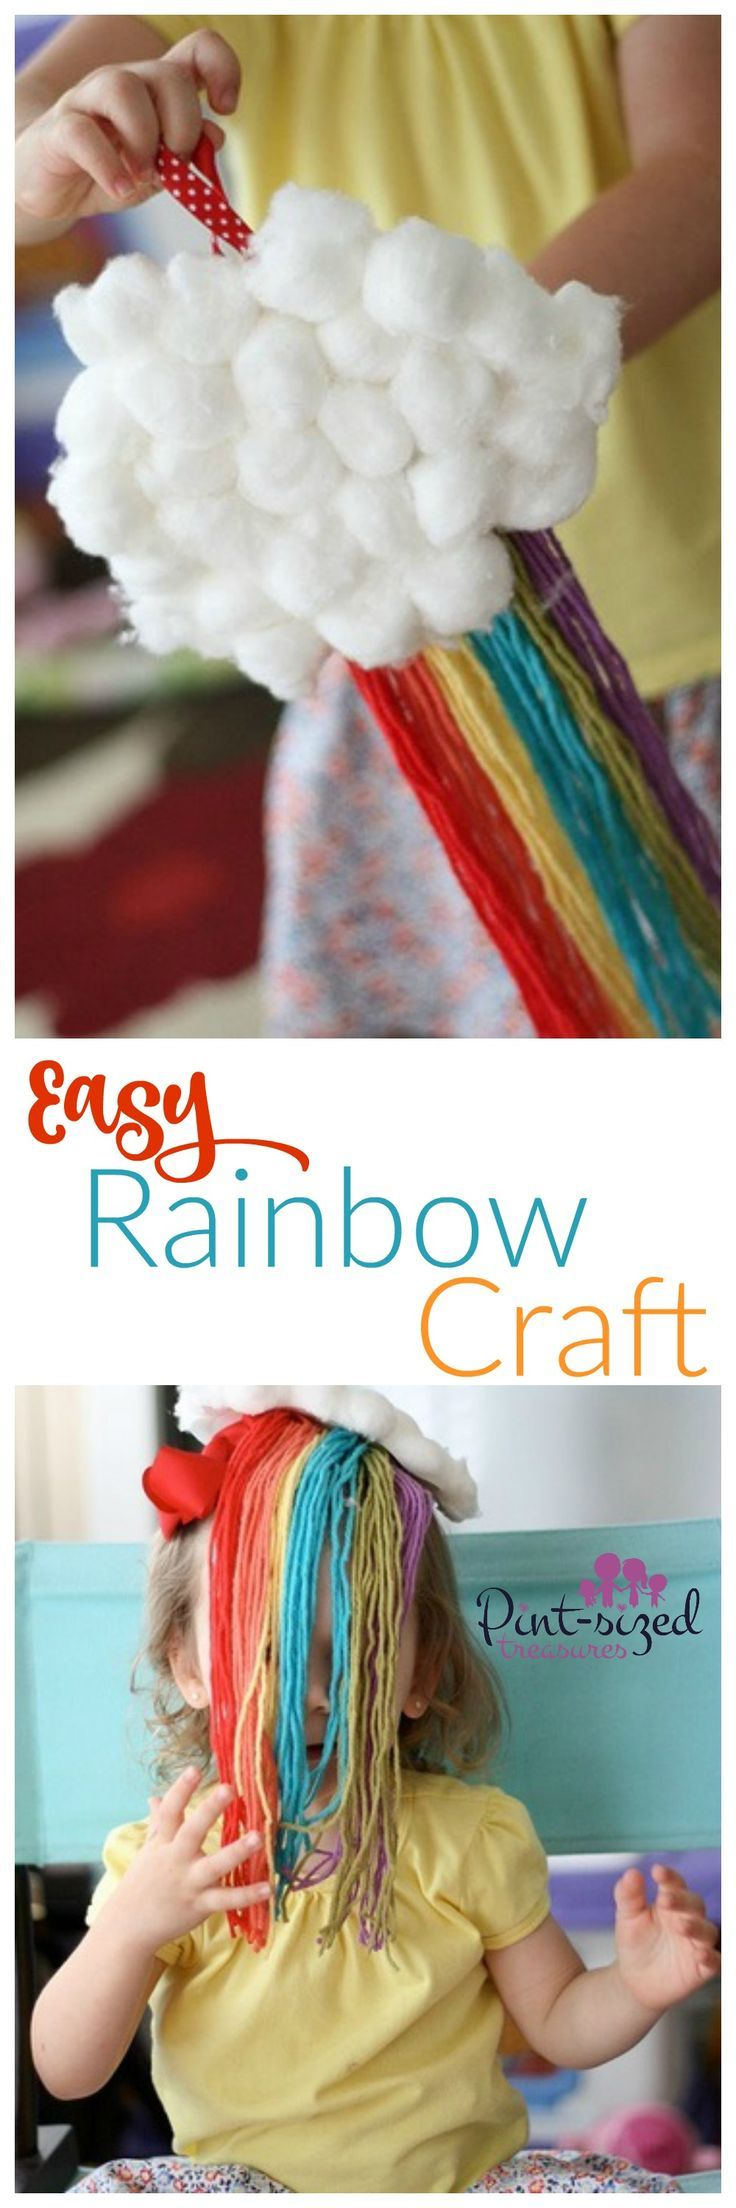 This super easy rainbow craft is perfect for giggly toddlers and preschoolers who love rainbows. Just a few materials makes this gorgeous, colorful craft! @alicanwrite